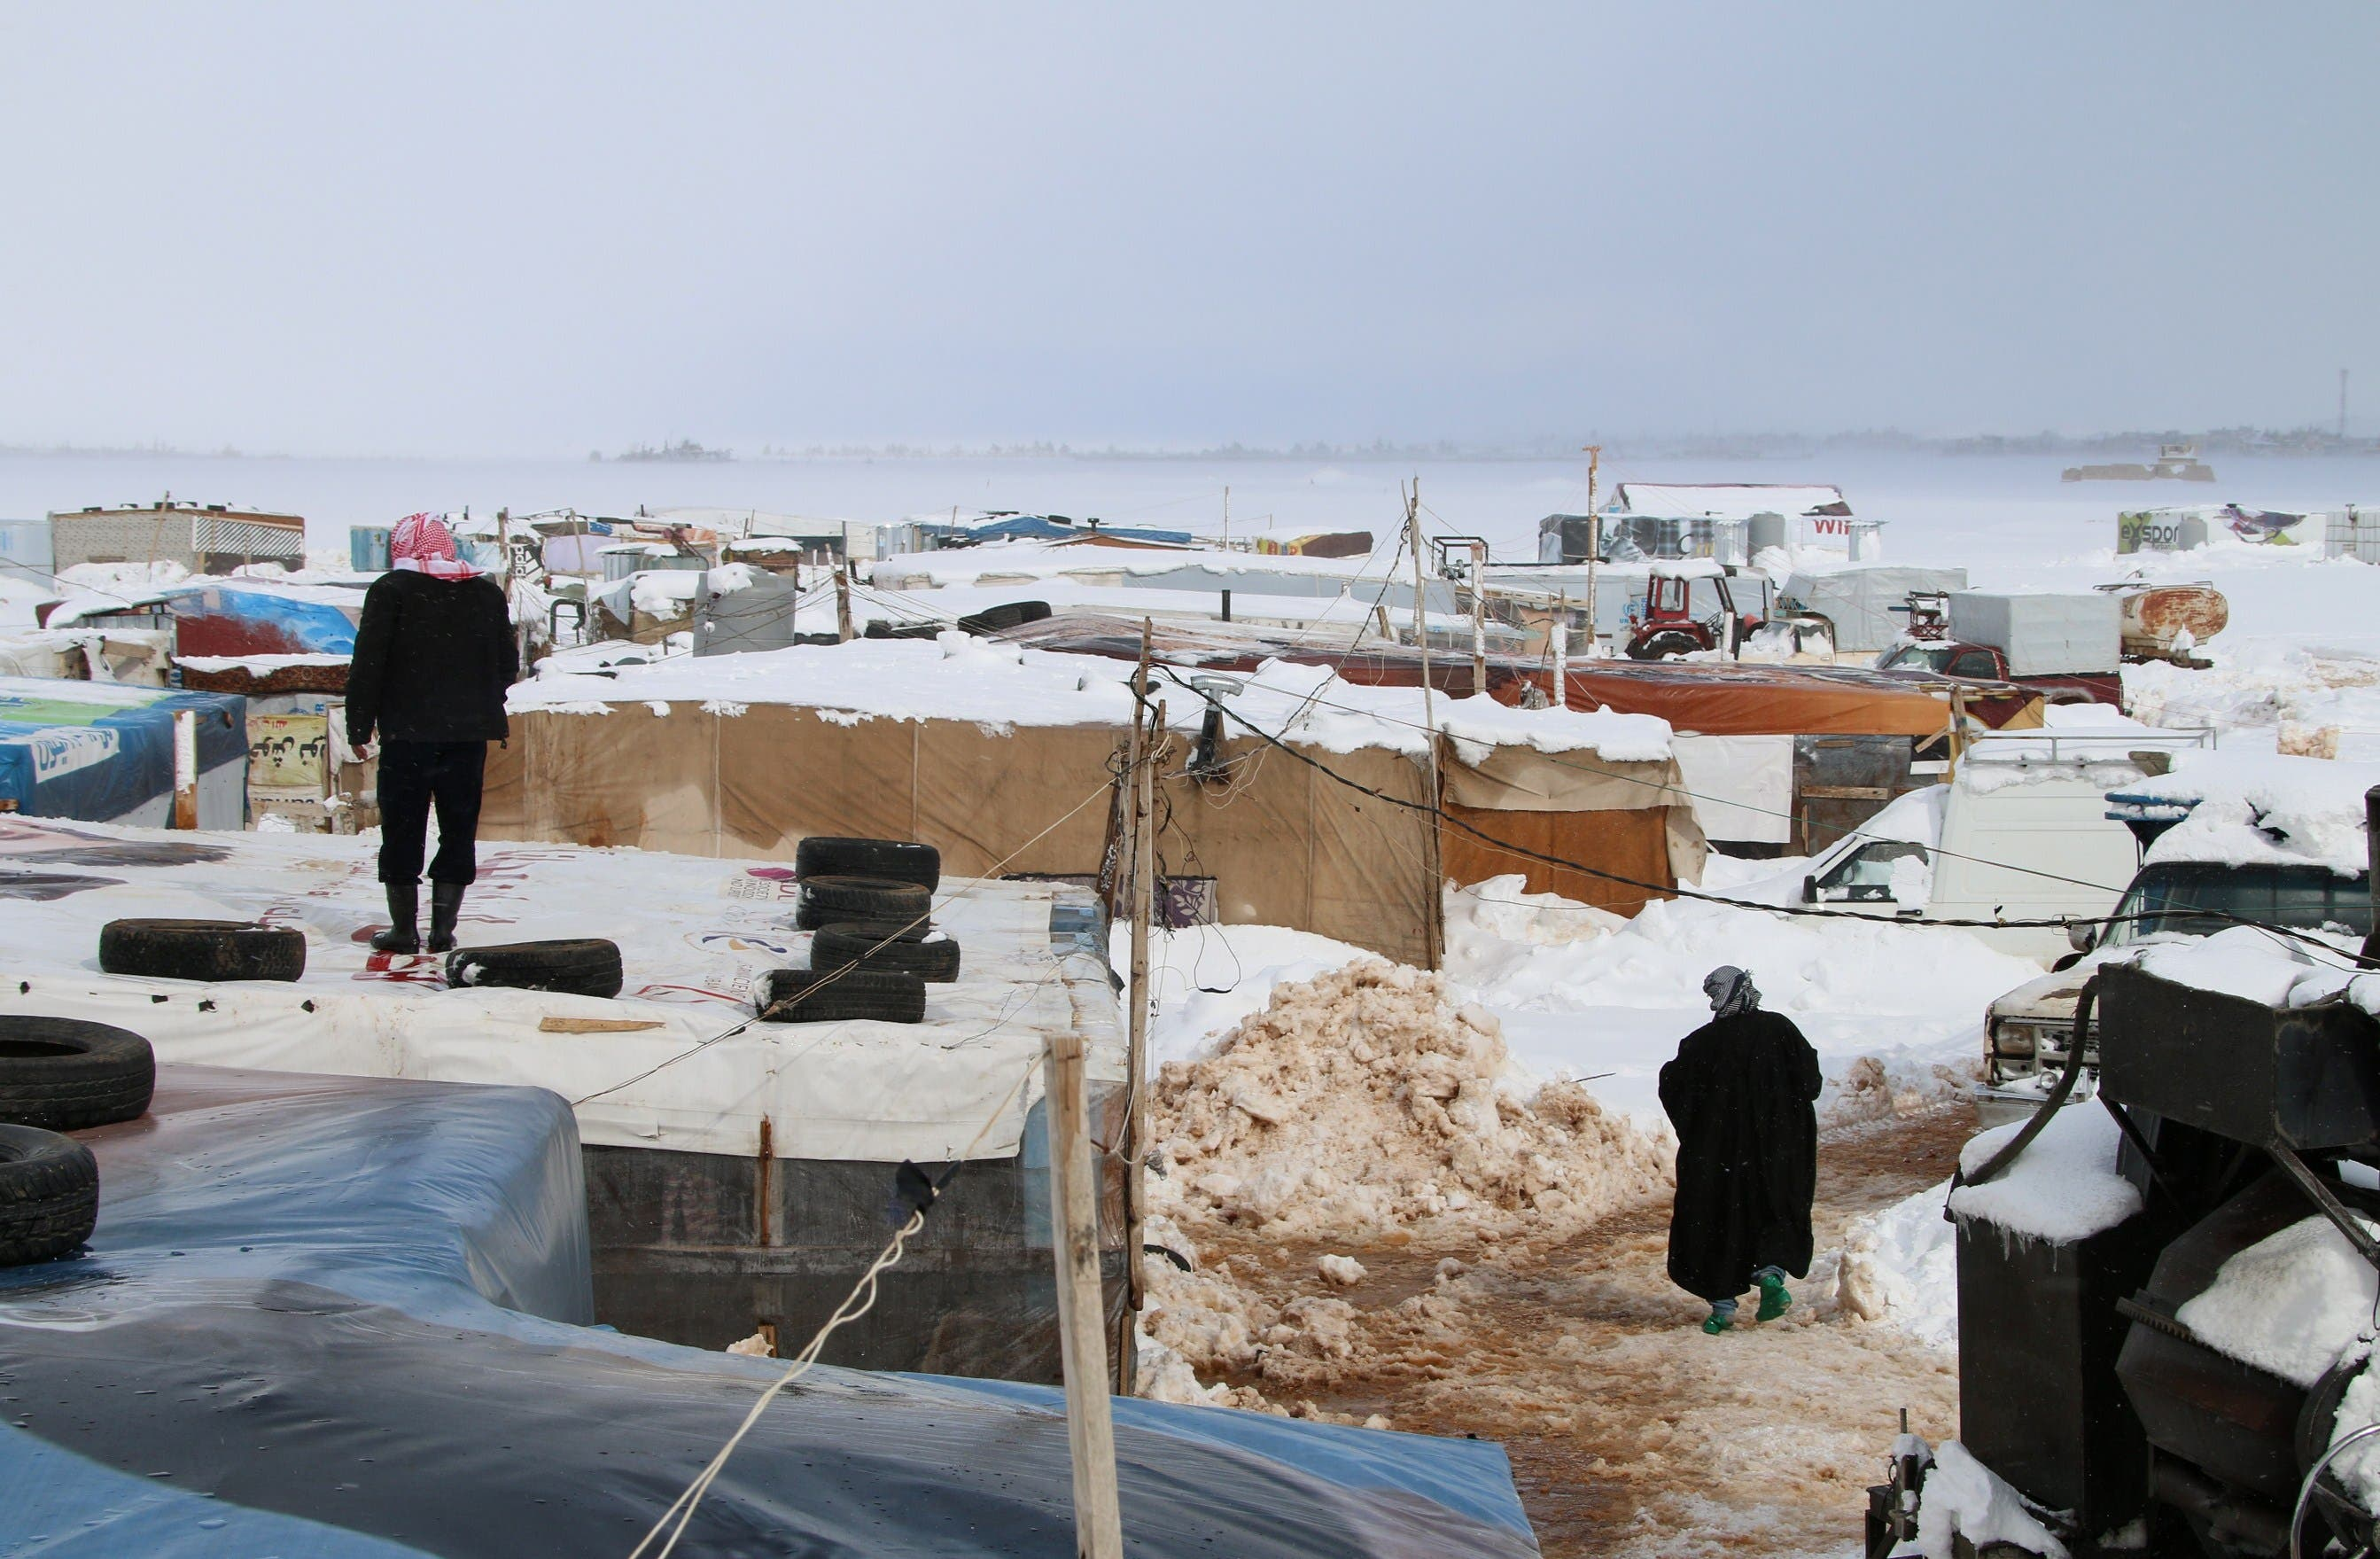 Syrian refugees struggle amid snowfall. (File photo: Supplied)